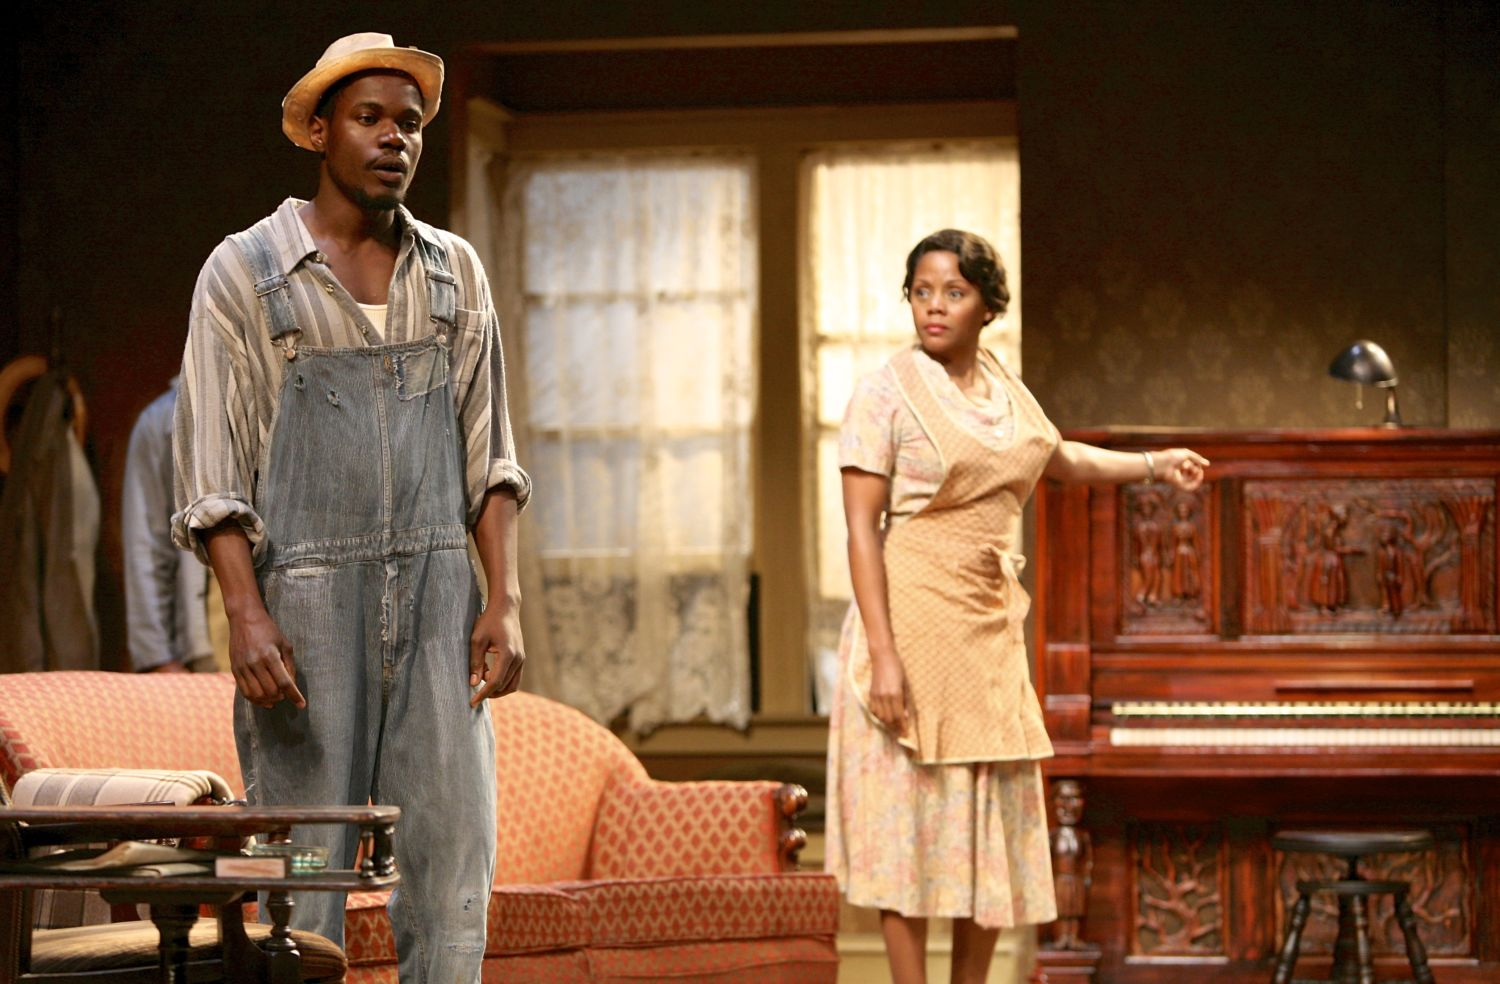 american commerce and materialism in the piano lesson a play by august wilson August wilson (april 27, 1945 - october 2, 2005) was an american playwright whose work included a series of ten plays, the pittsburgh cycle, for which he received two pulitzer prizes for drama.